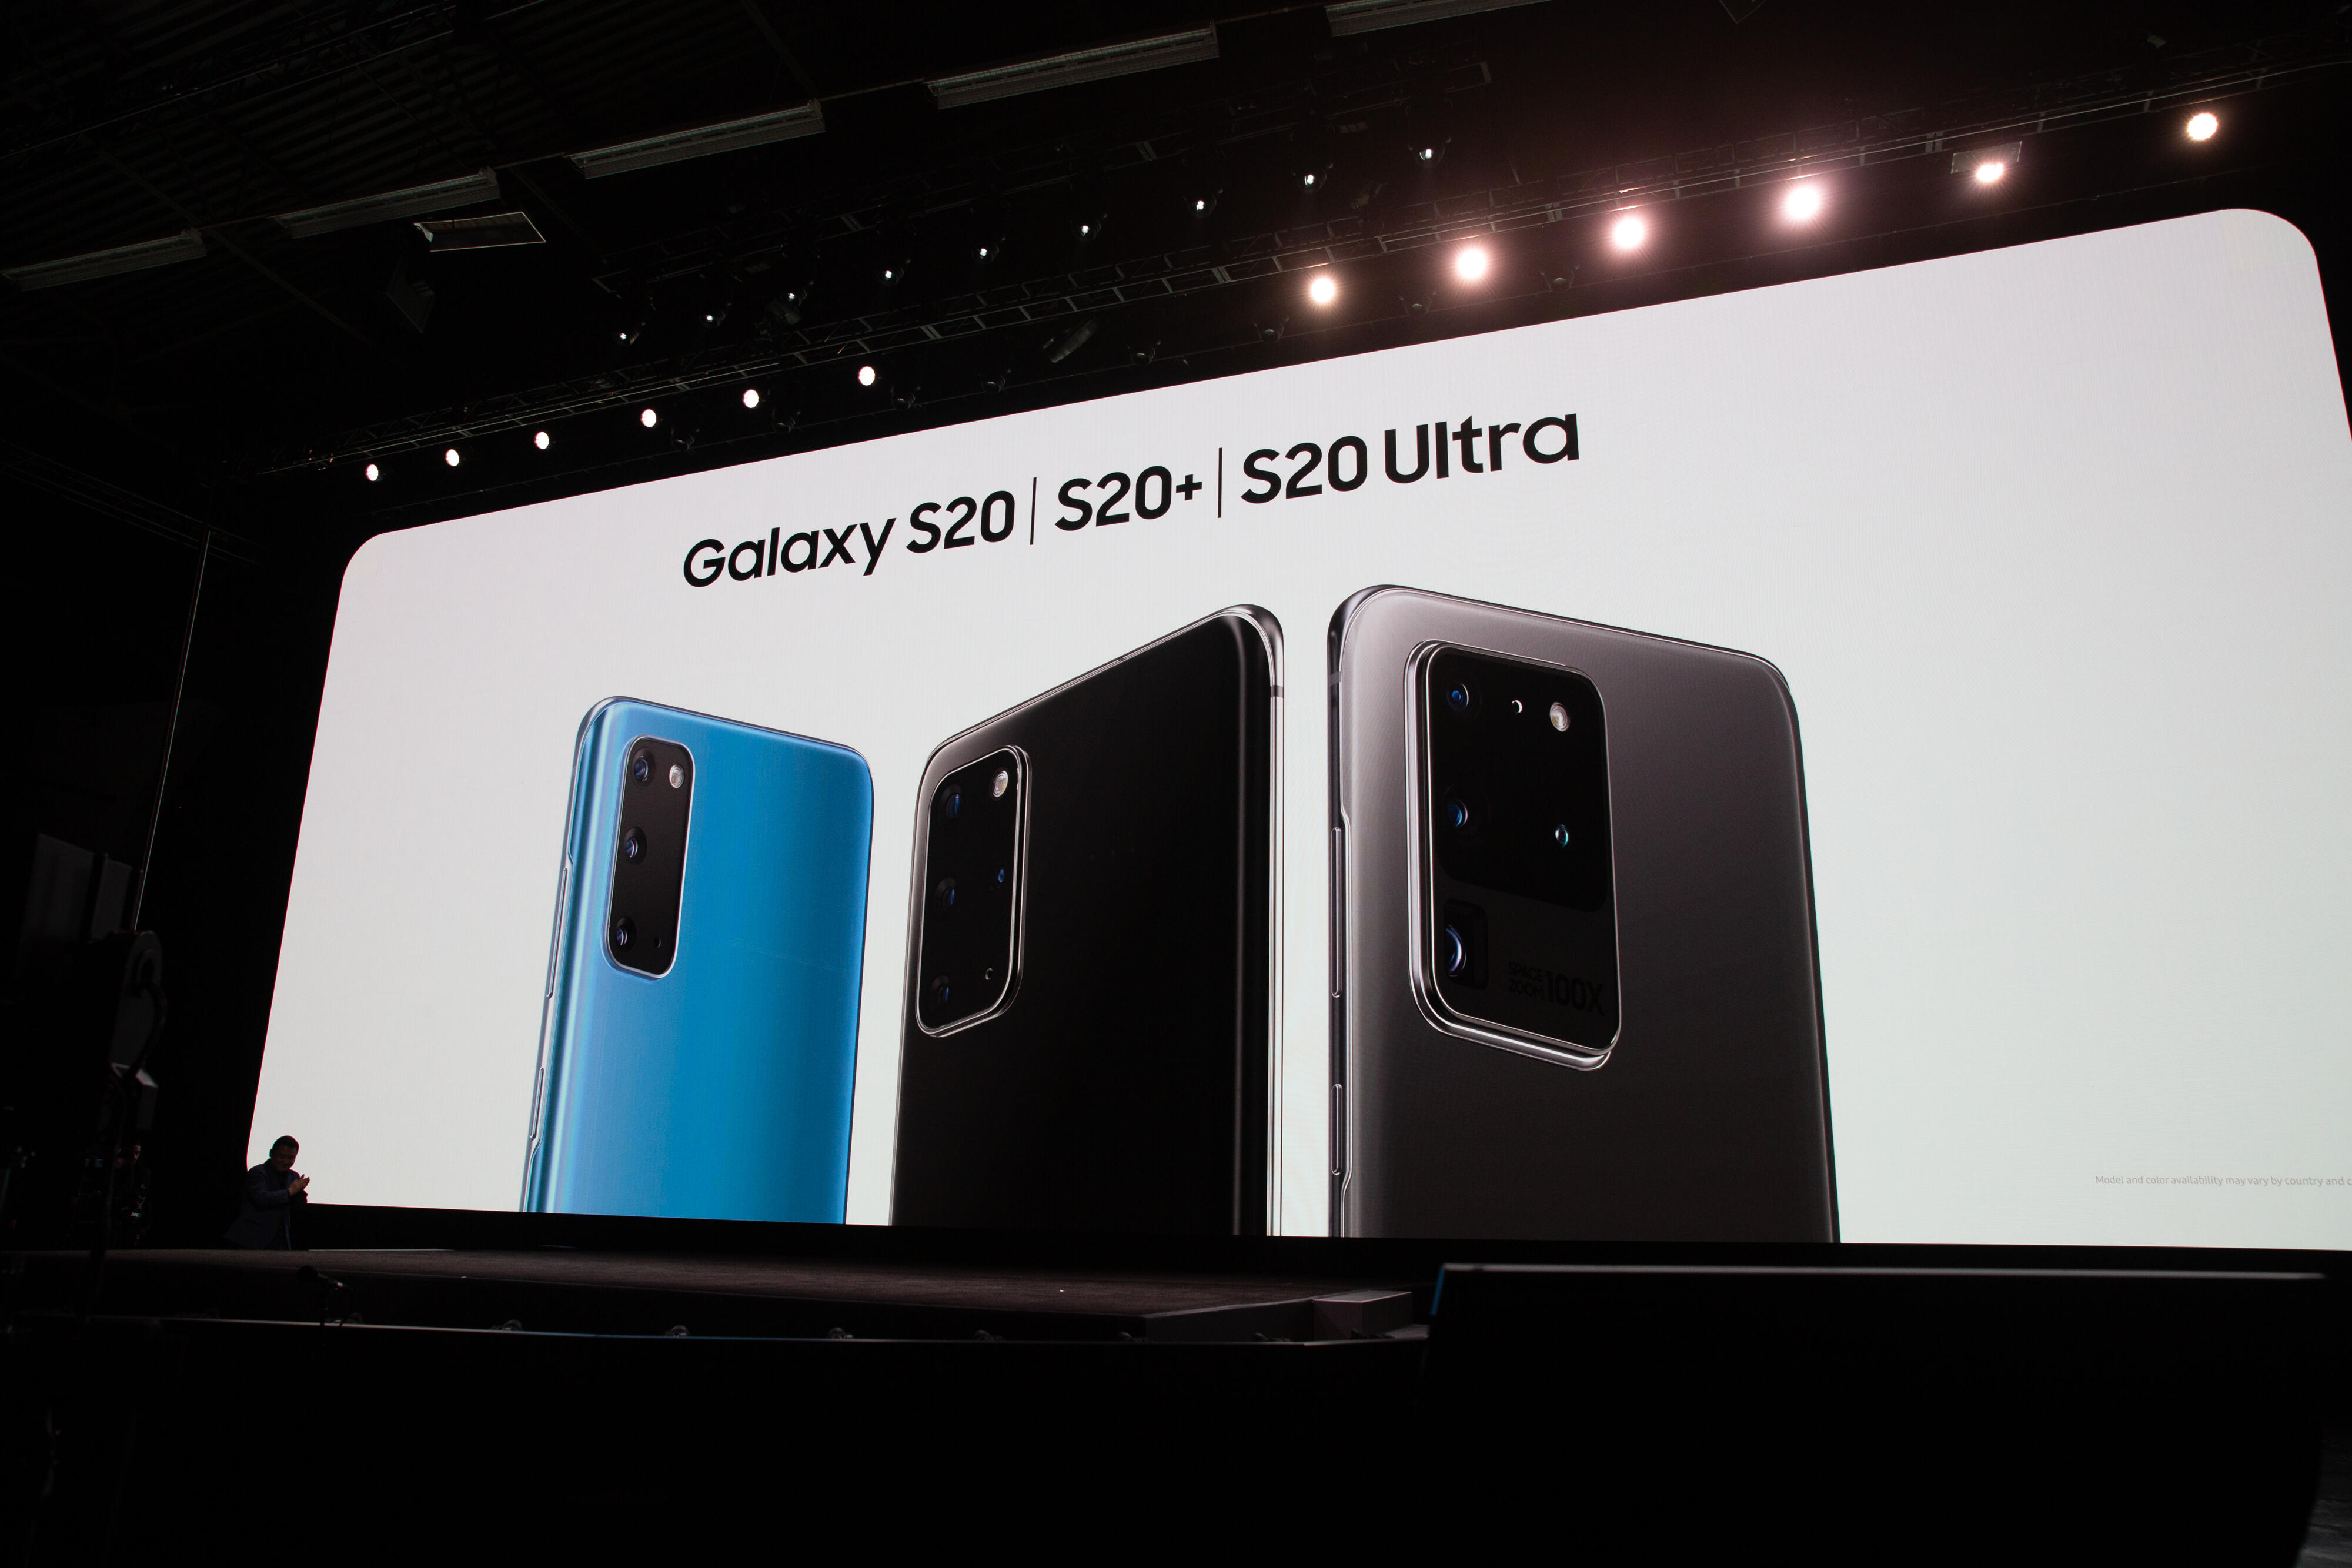 Galaxy S20, S20 Plus and S20 Ultra